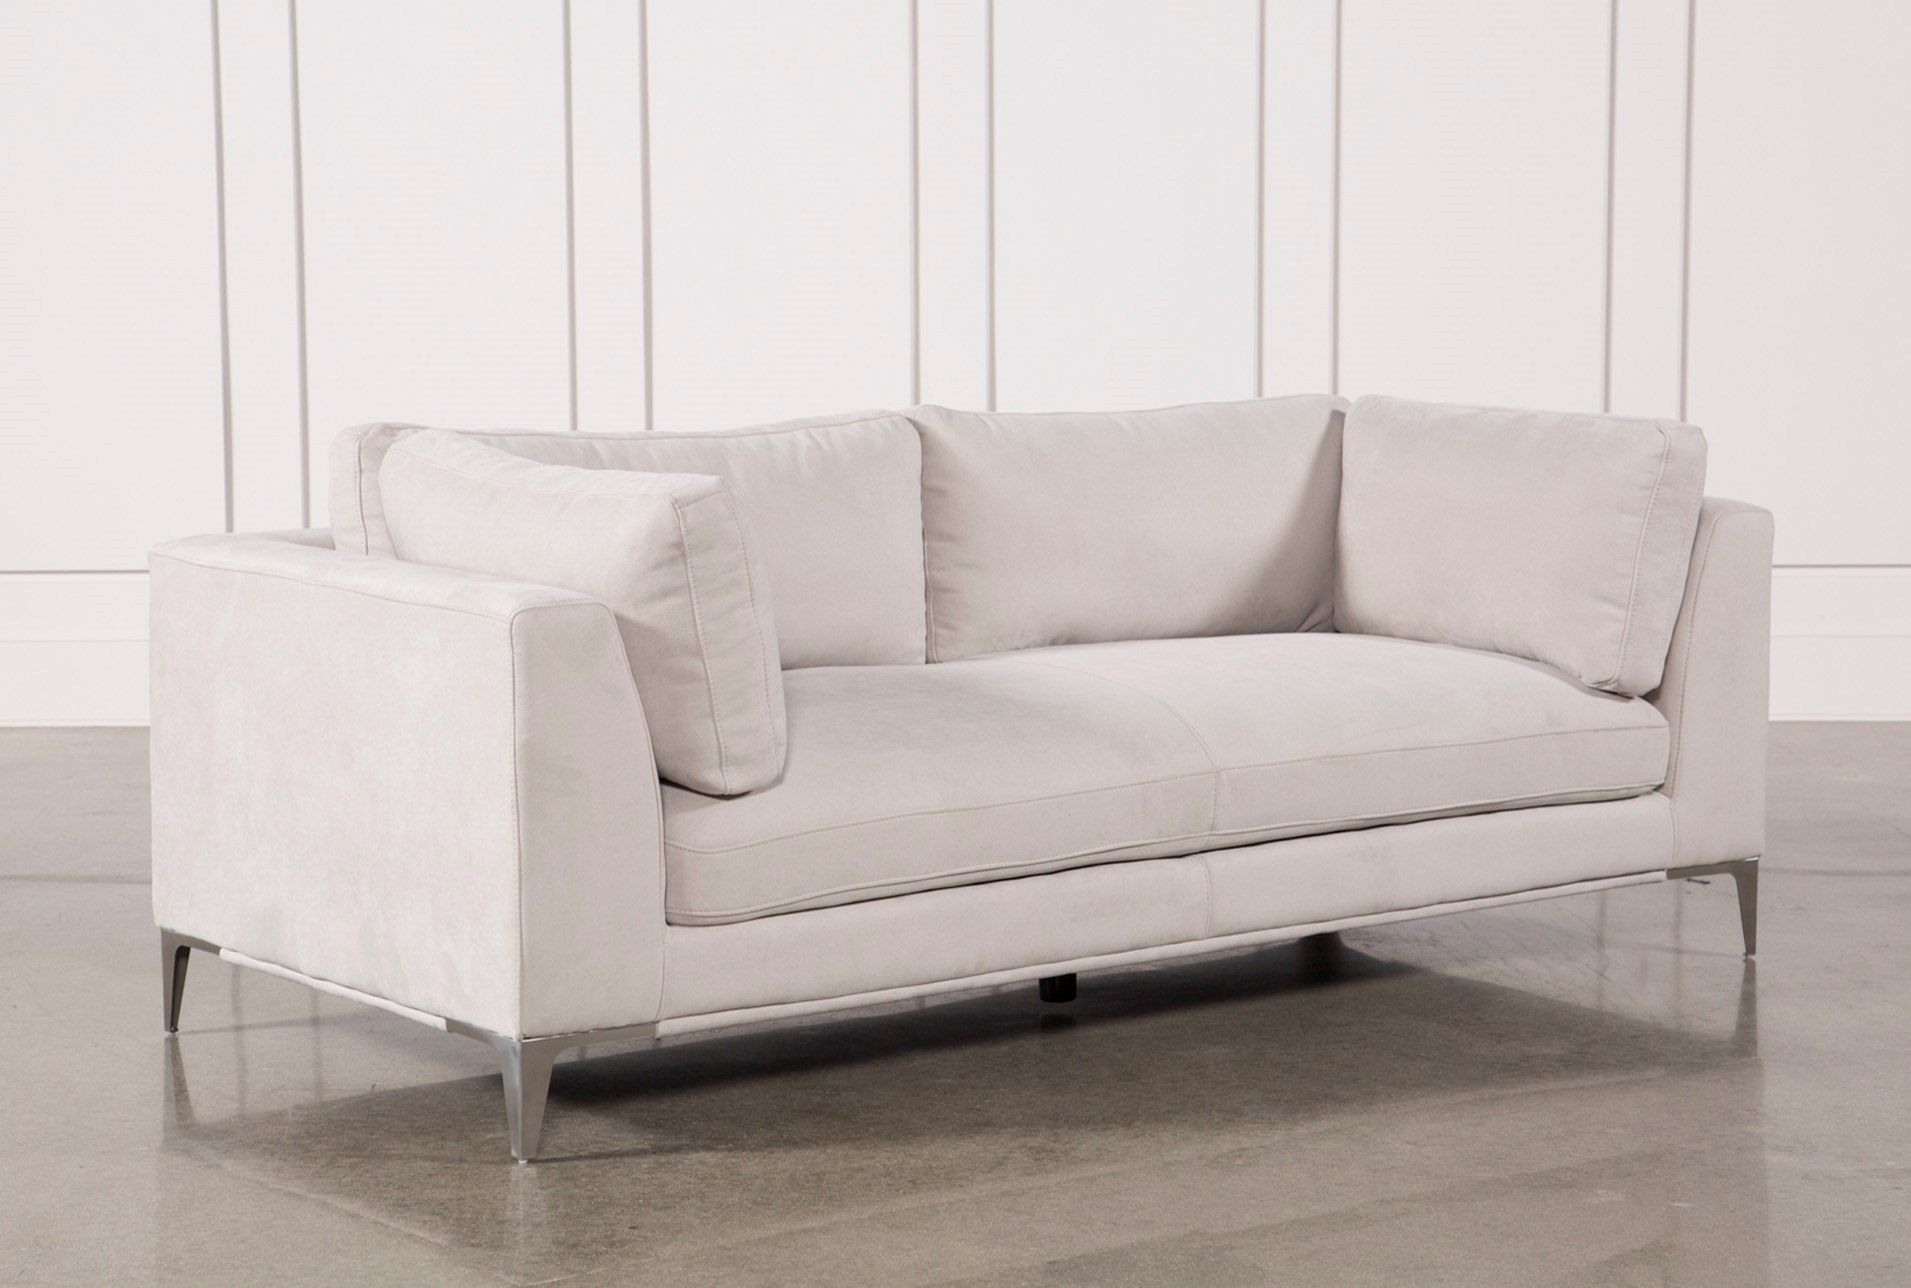 Best Apollo Light Grey Sofa W 2 Pillows Clearance 450 Was 640 x 480